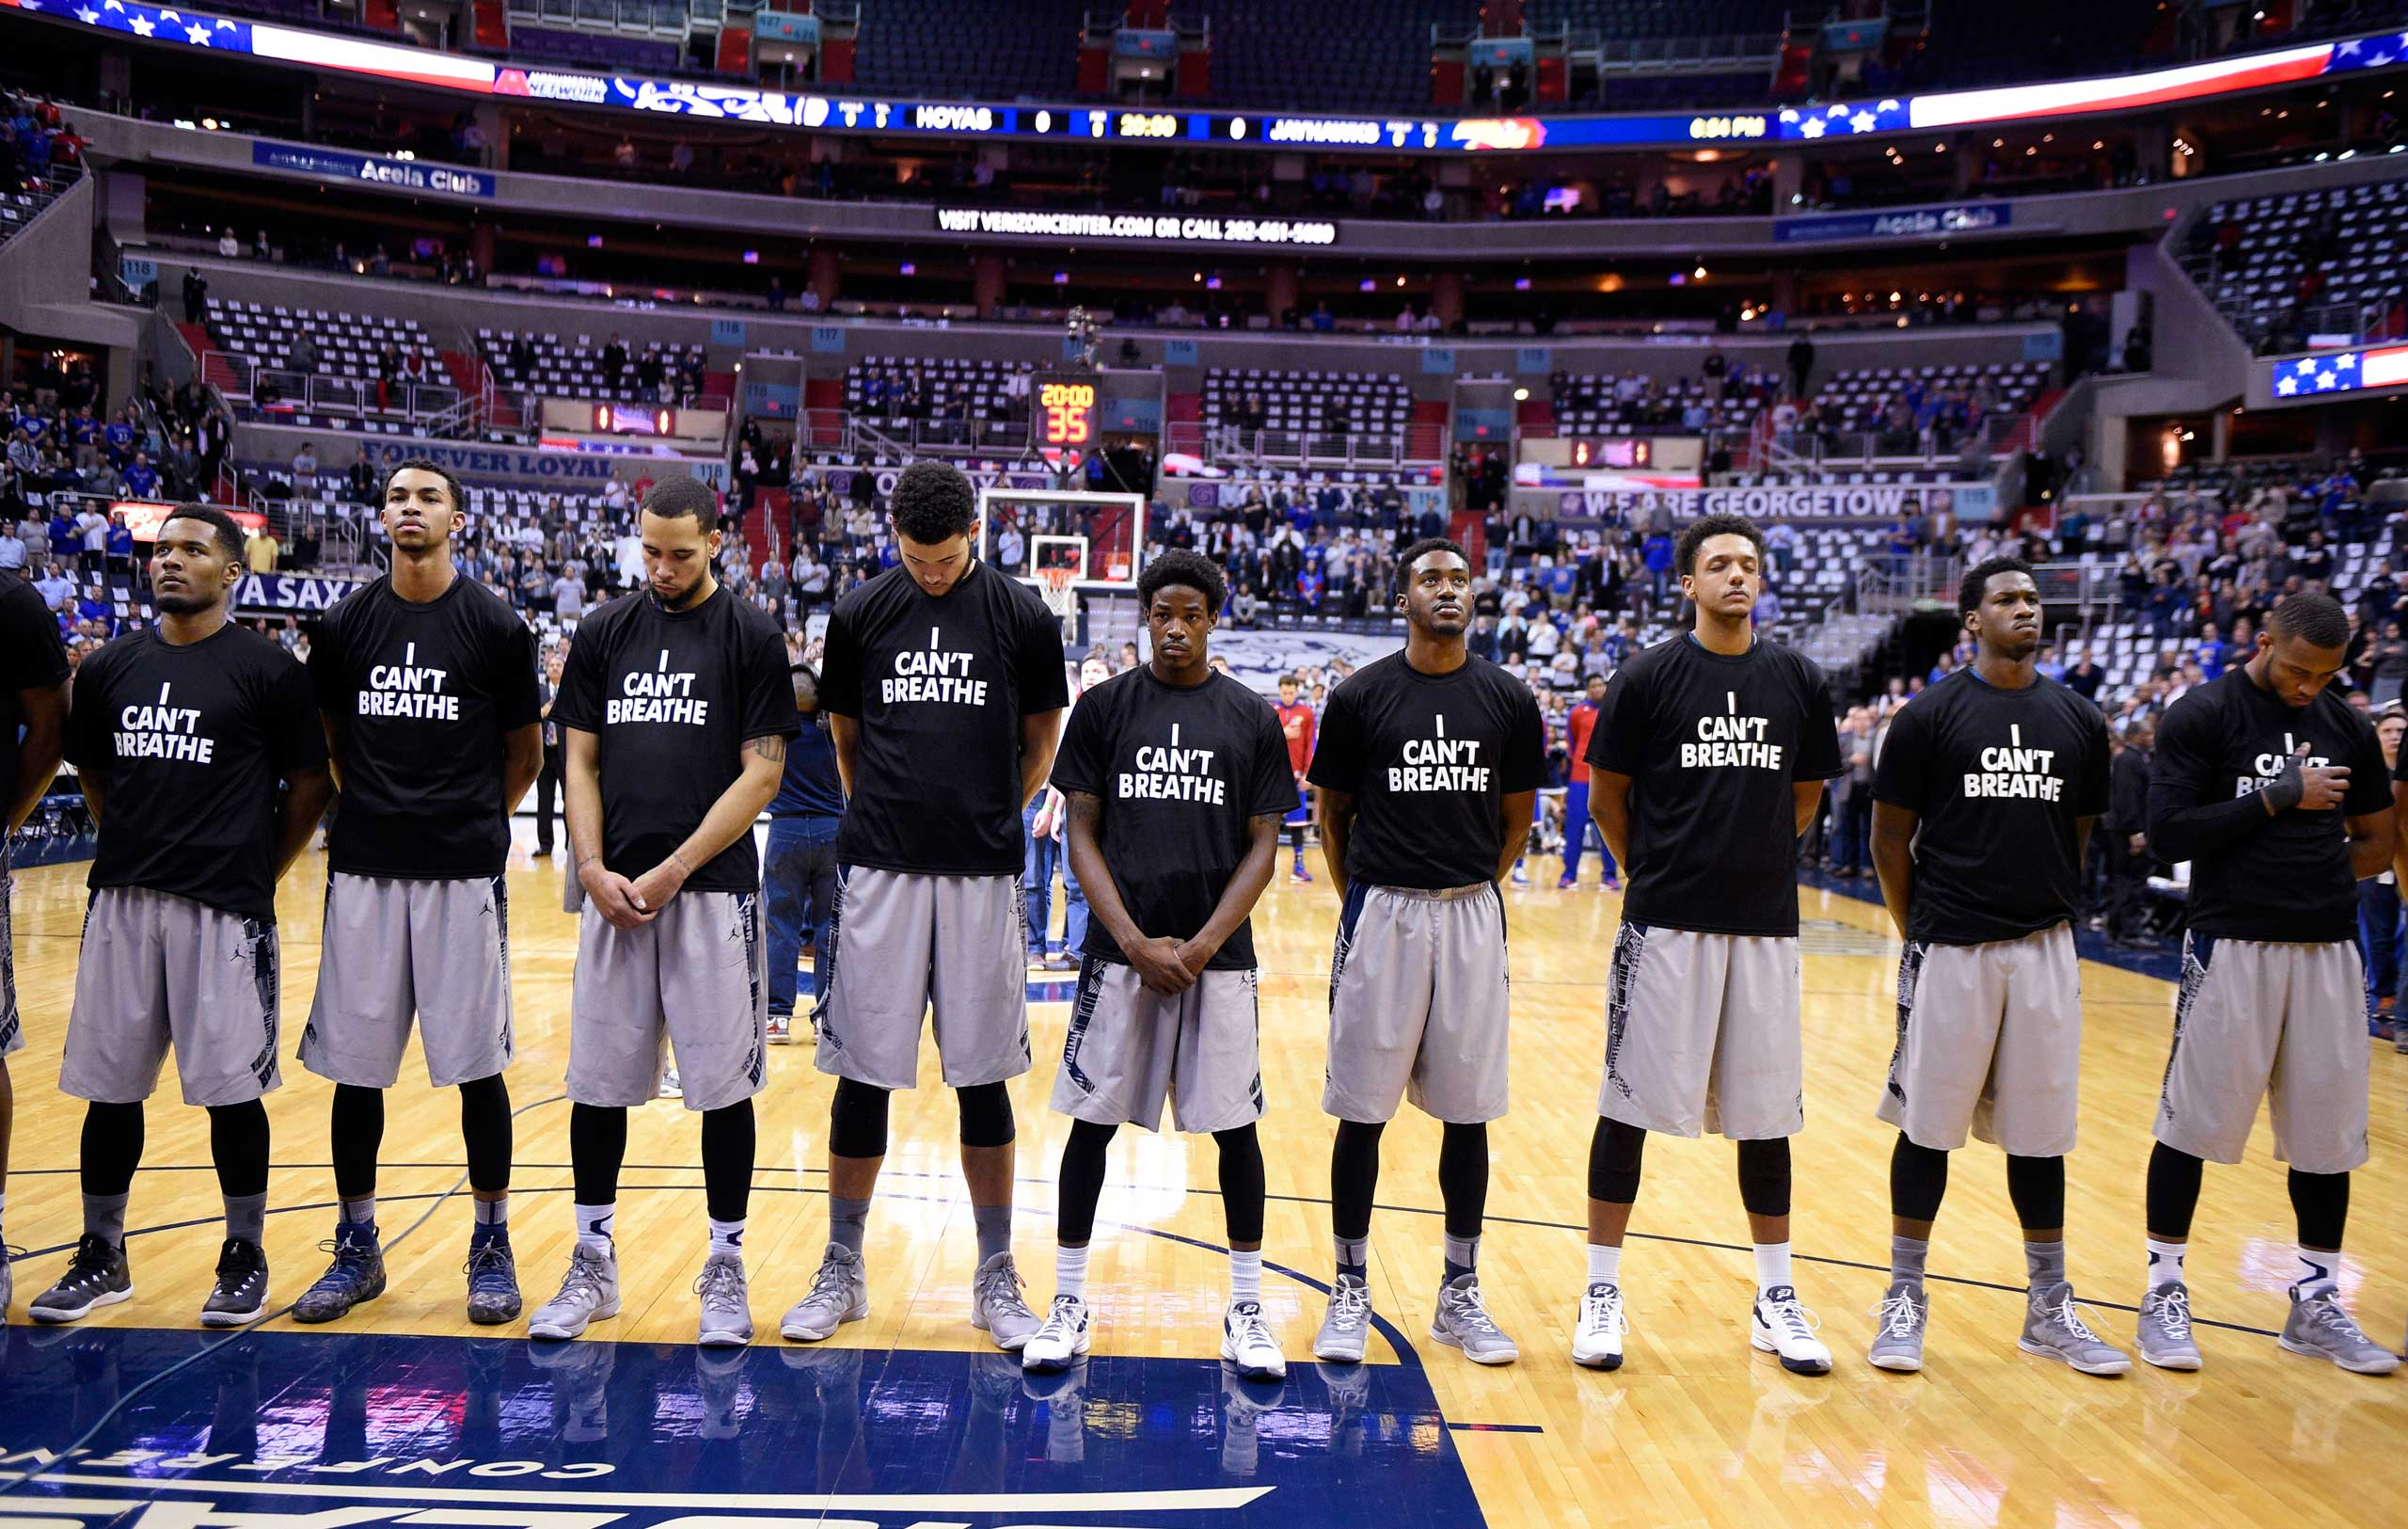 Members of the Georgetown basketball team, wearing  I Can't Breathe  t-shirts, stand for the national anthem before an NCAA college basketball game against Kansas in Washington, Dec. 10, 2014.